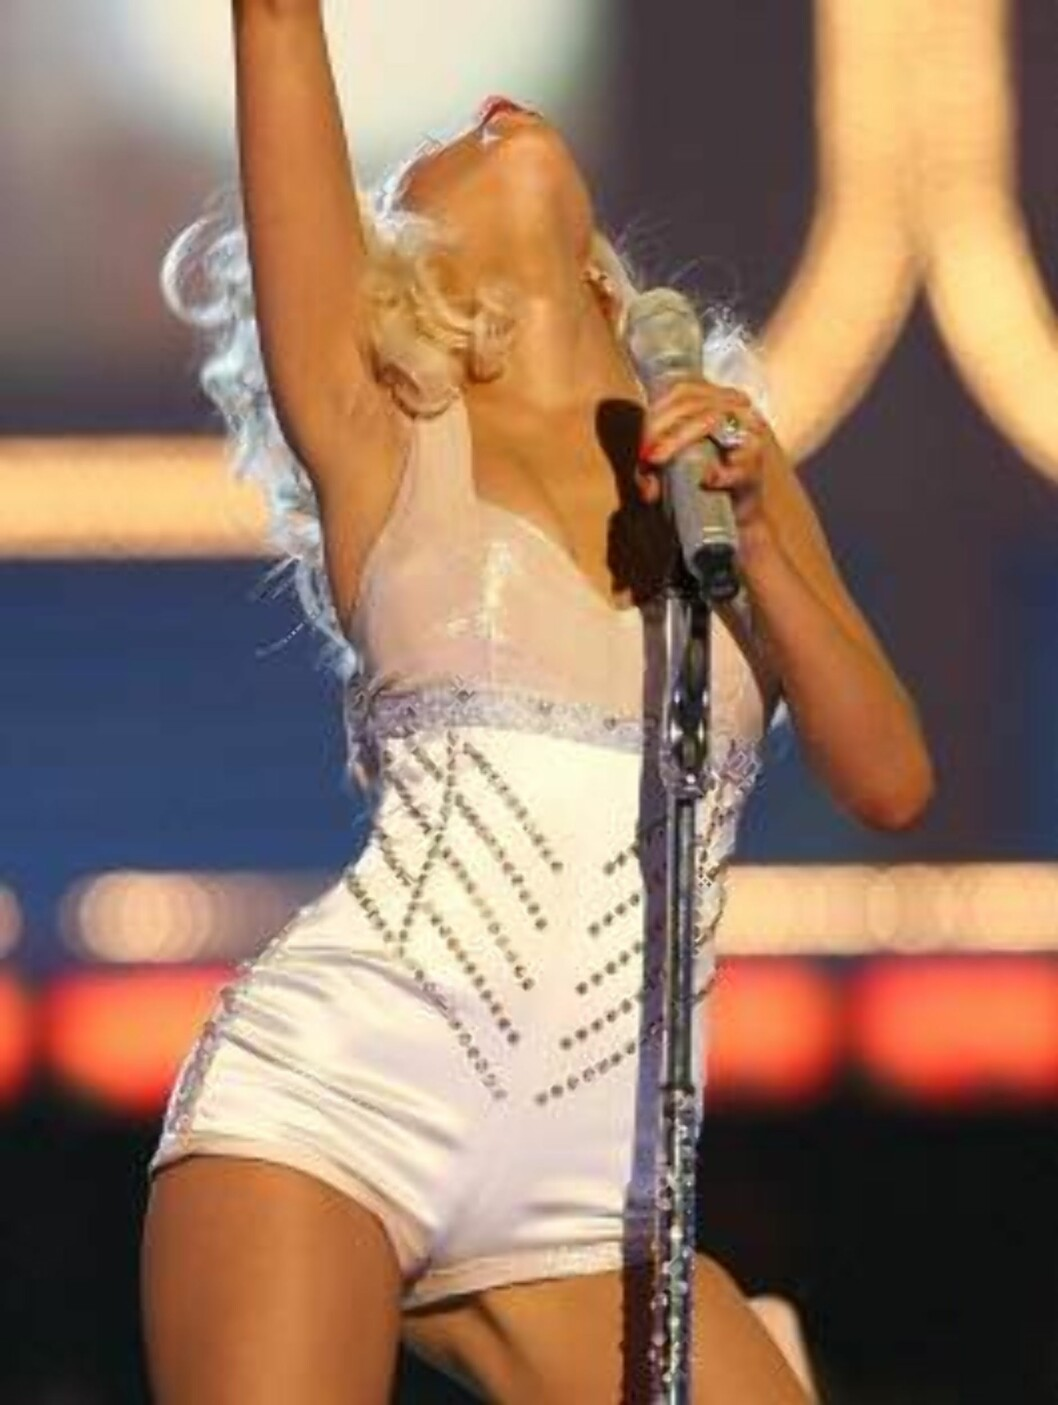 <strong>CULVER CITY, CA - JUNE 03:</strong>  Singer Christina Aguilera performs onstage at the 2006 MTV Movie Awards at Sony Pictures Studio on June 3, 2006 in Culver City, California.  (Photo by Kevin Winter/Getty Images) *** Local Caption *** Christina Aguilera  * SPECI Foto: All Over Press